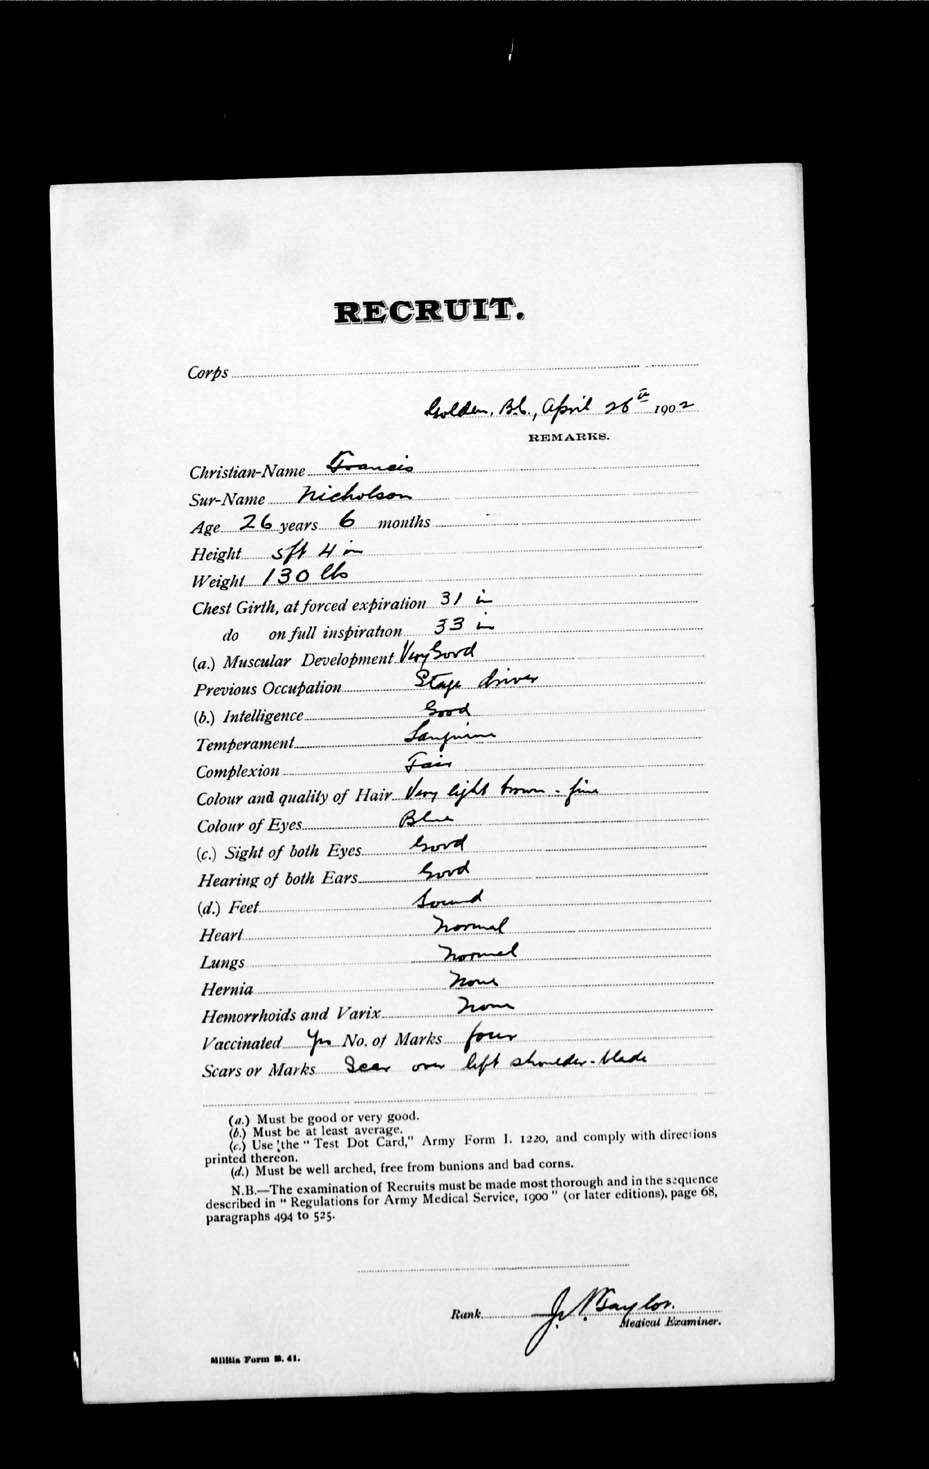 Digitized page of Boer War for Image No.: e002192902